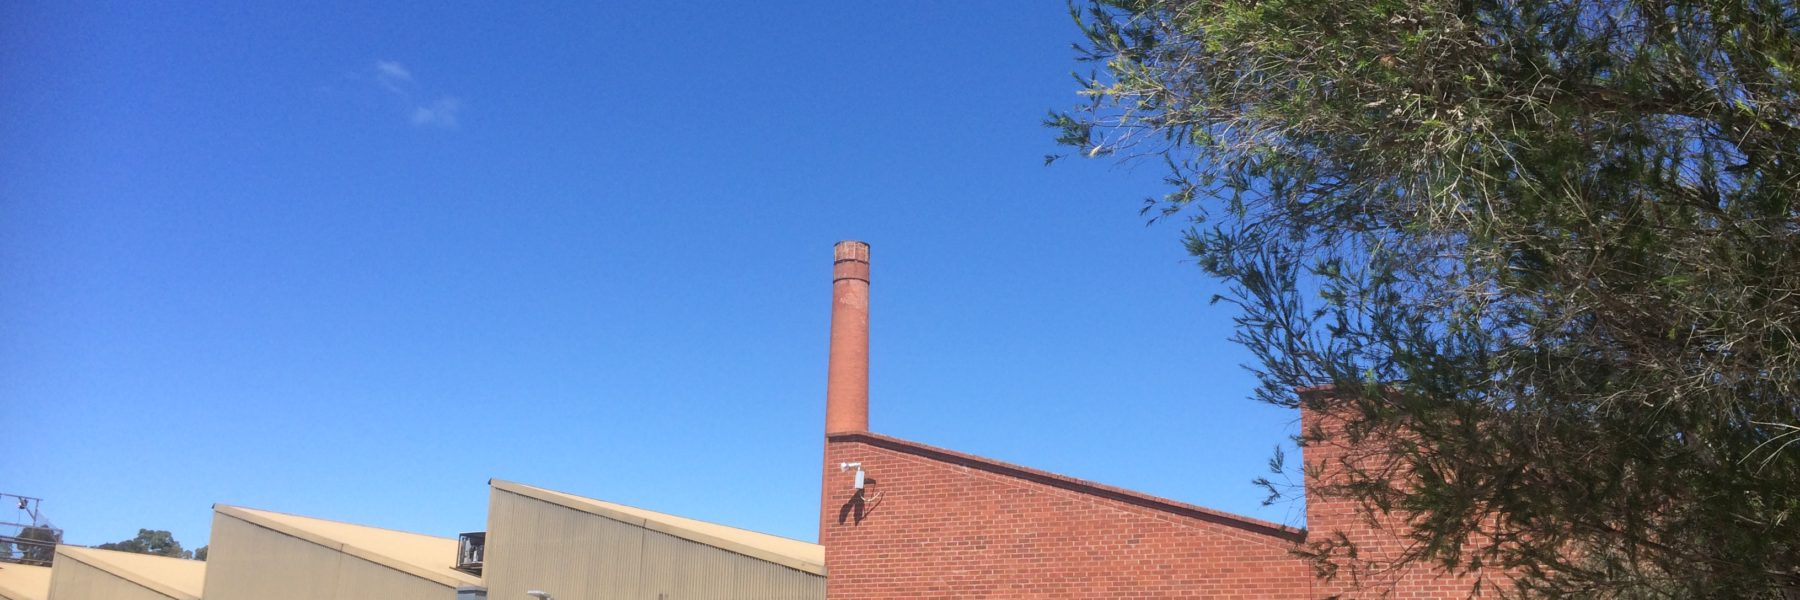 Sawtooth at The Mill Castlemaine